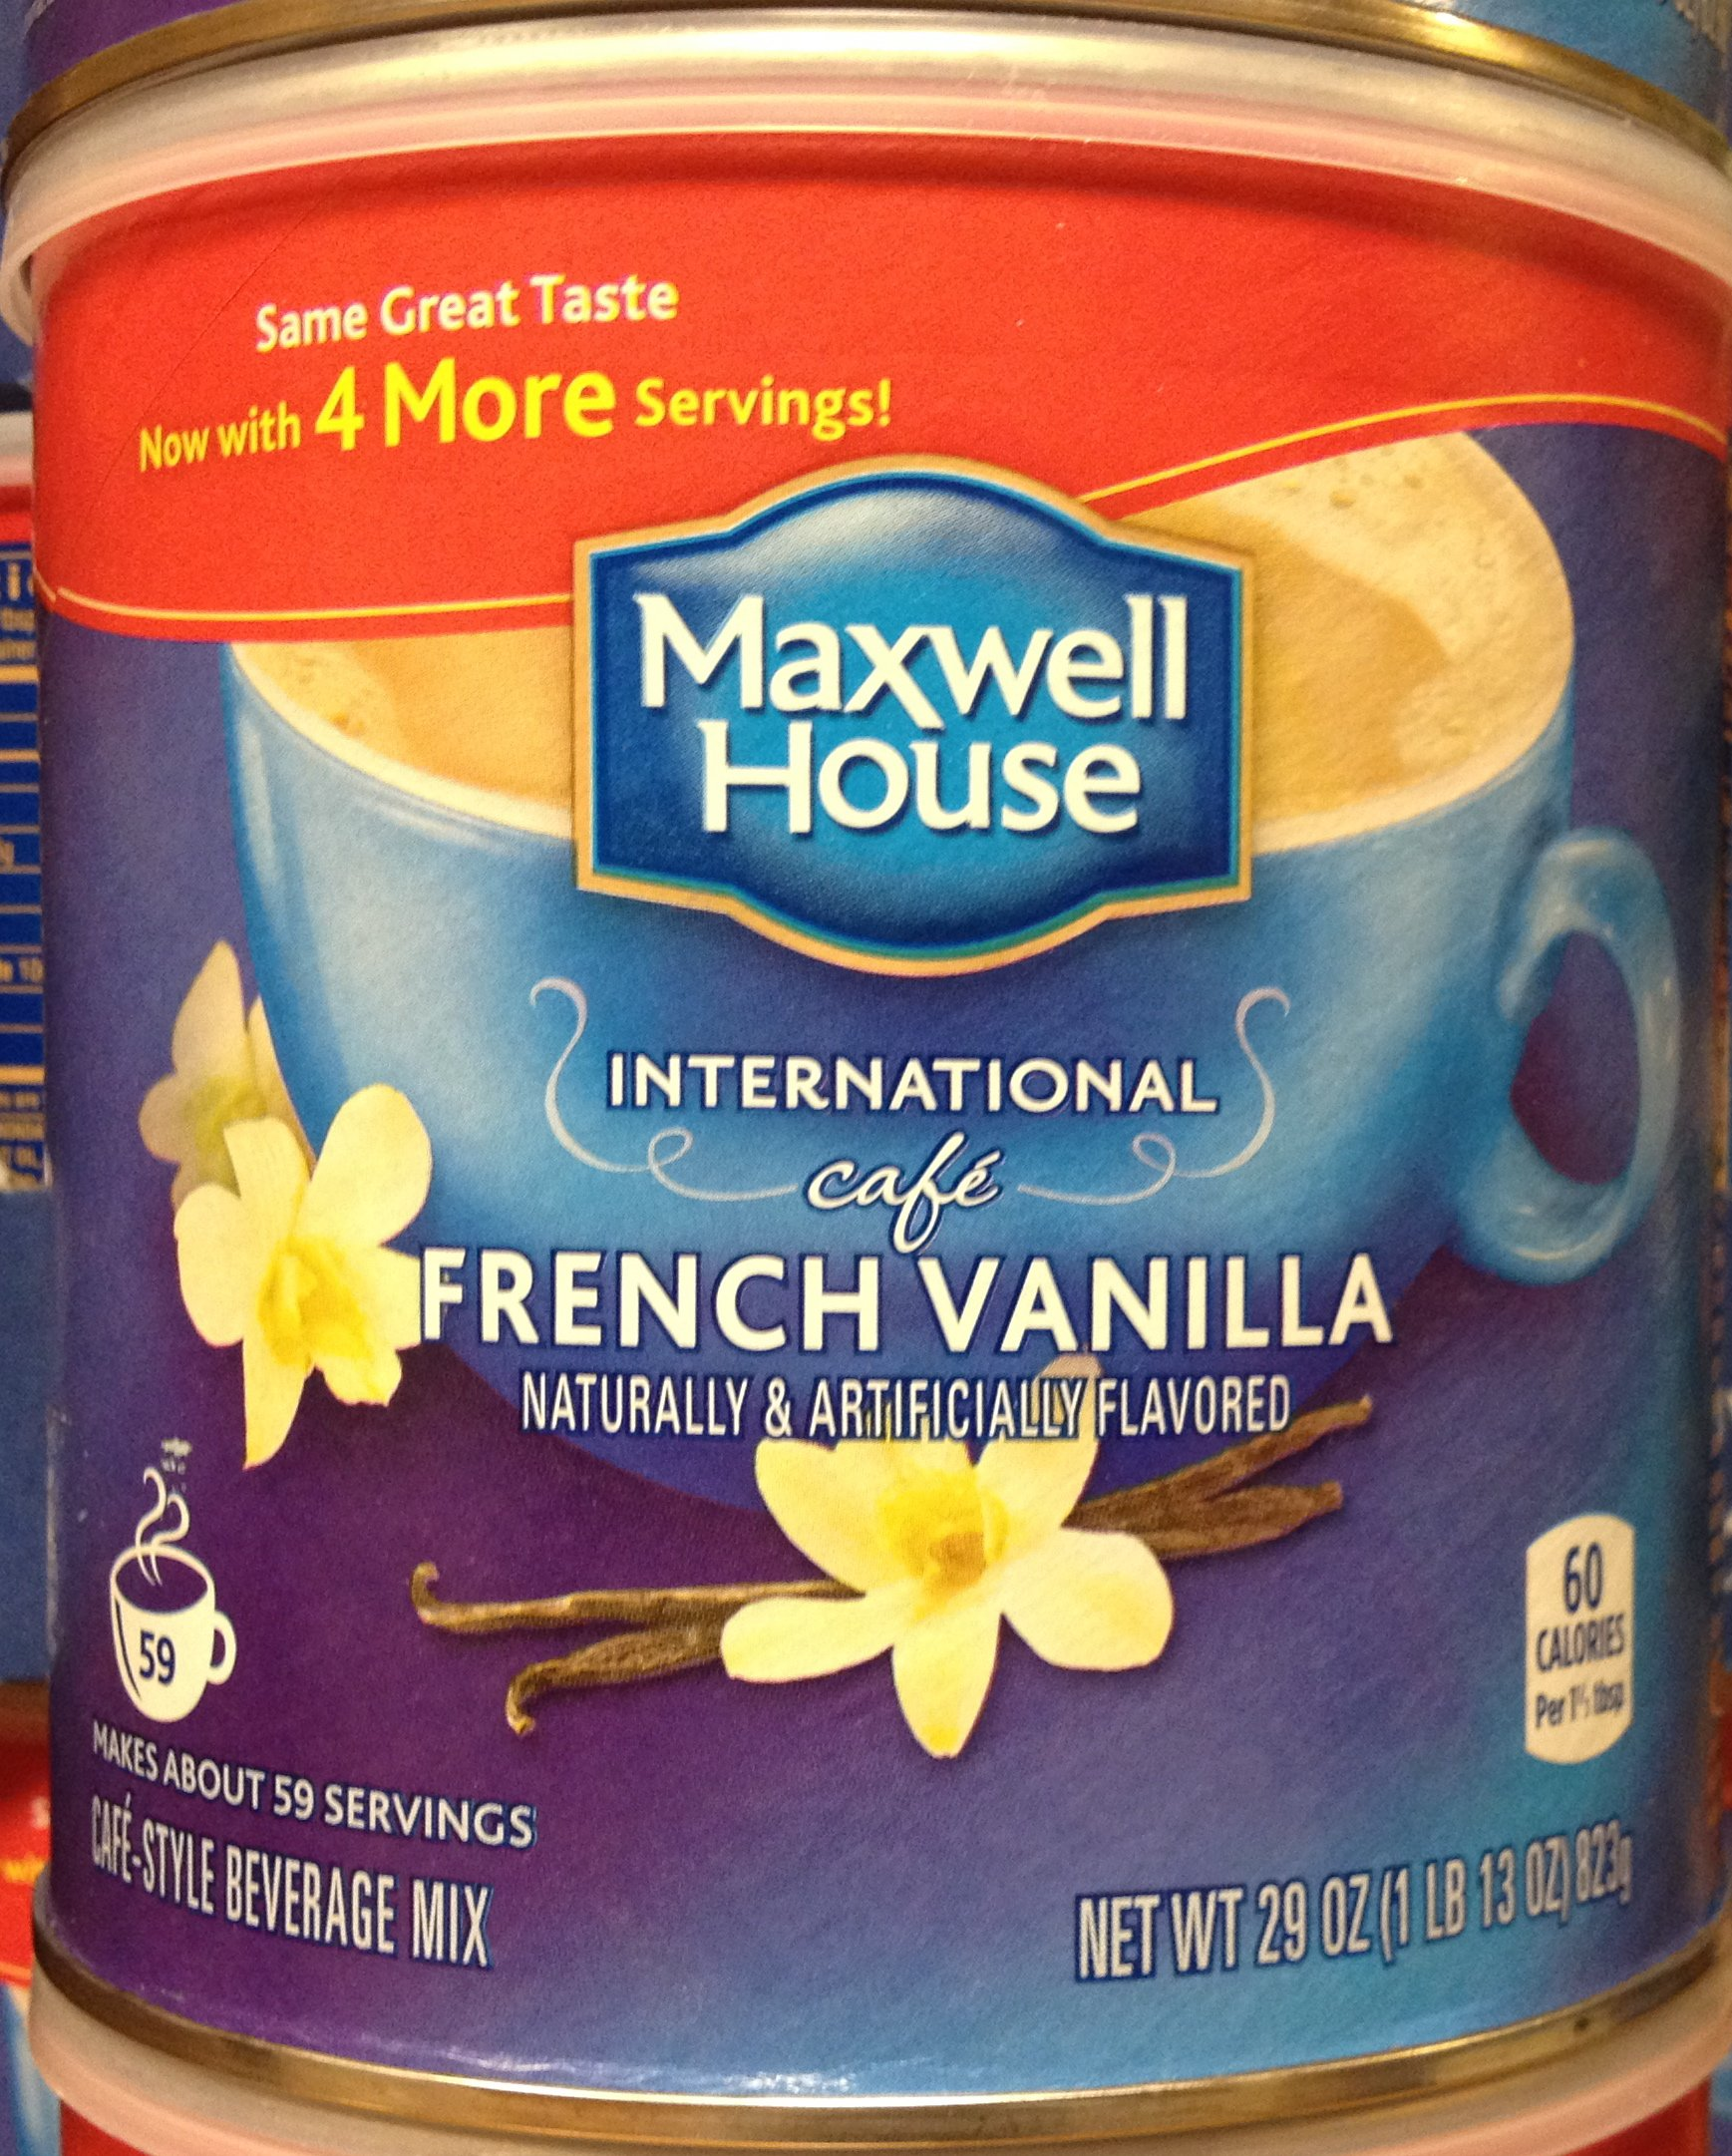 Maxwell House International Cafe FRENCH VANILLA 29oz. (12 Pack)